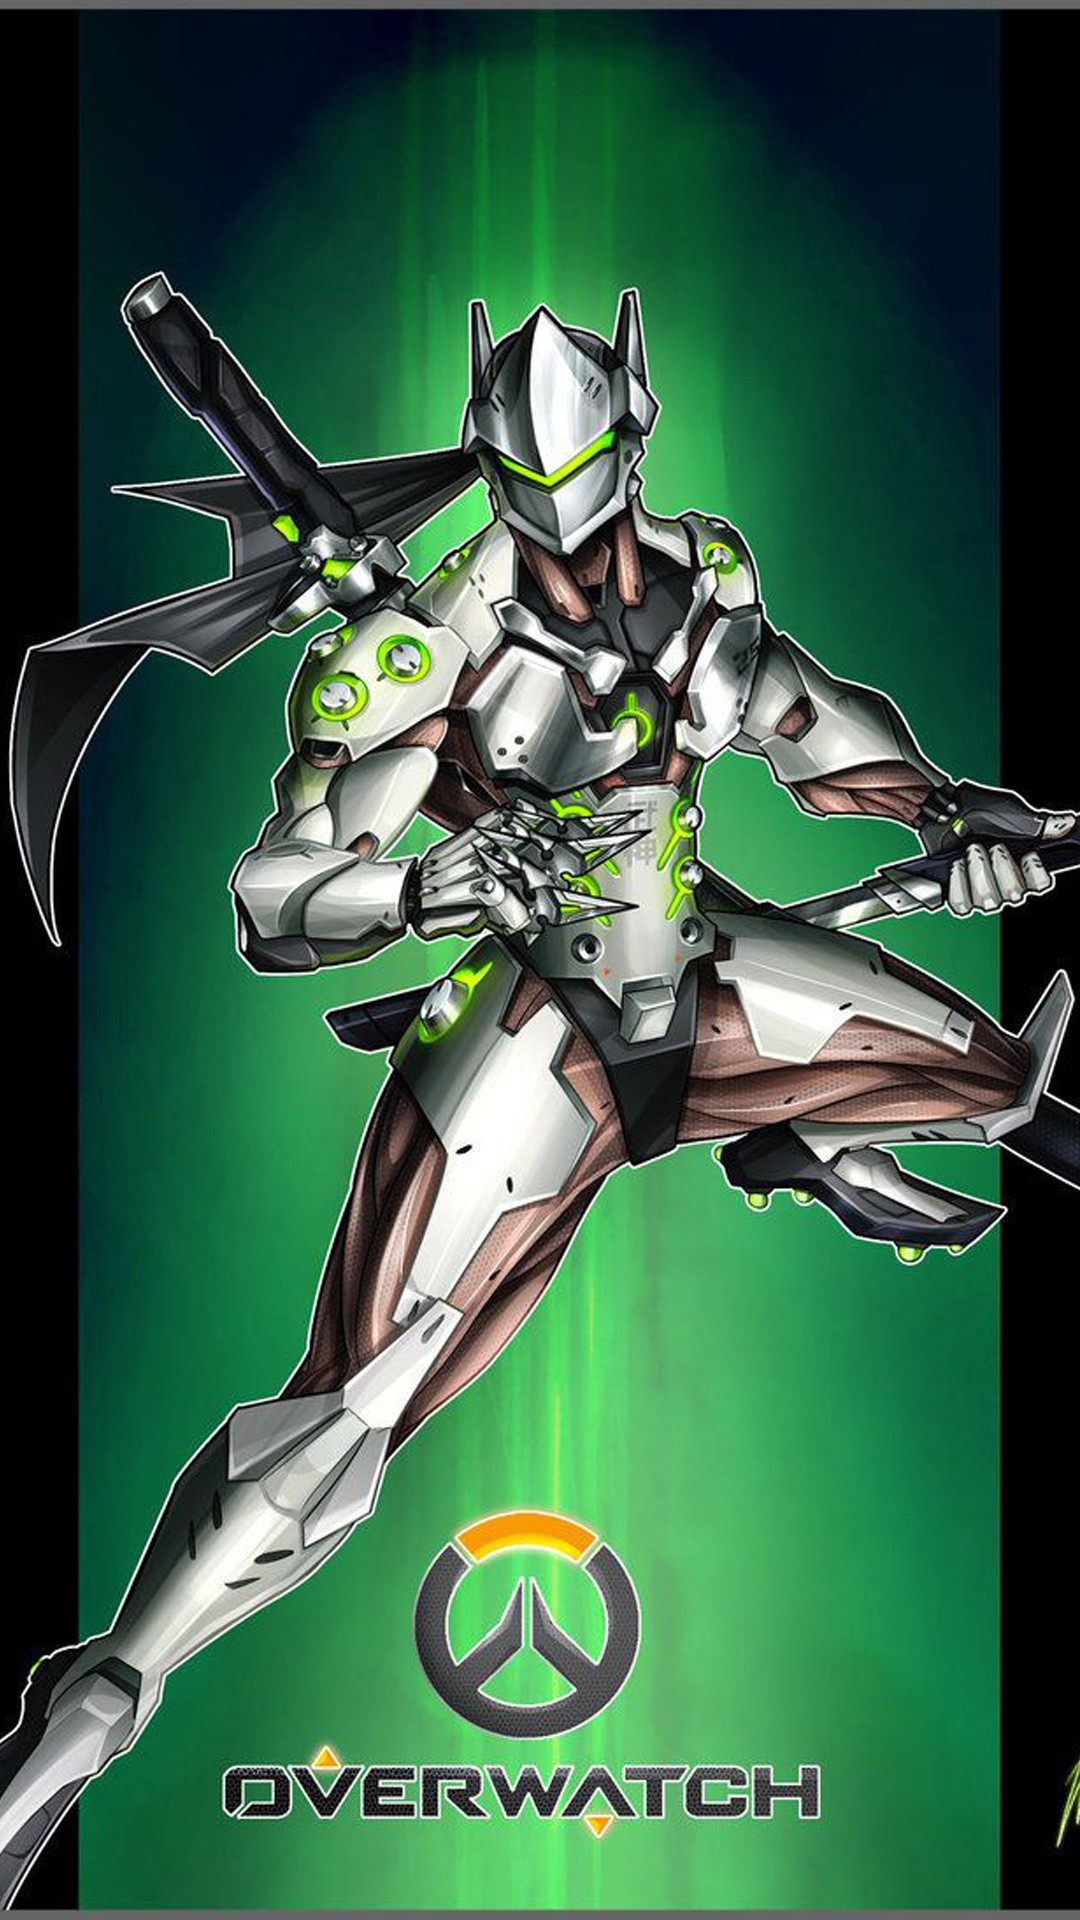 1080x1920 Genji Overwatch wallpapers and backgrounds Genji Overwatch wallpaper iphone